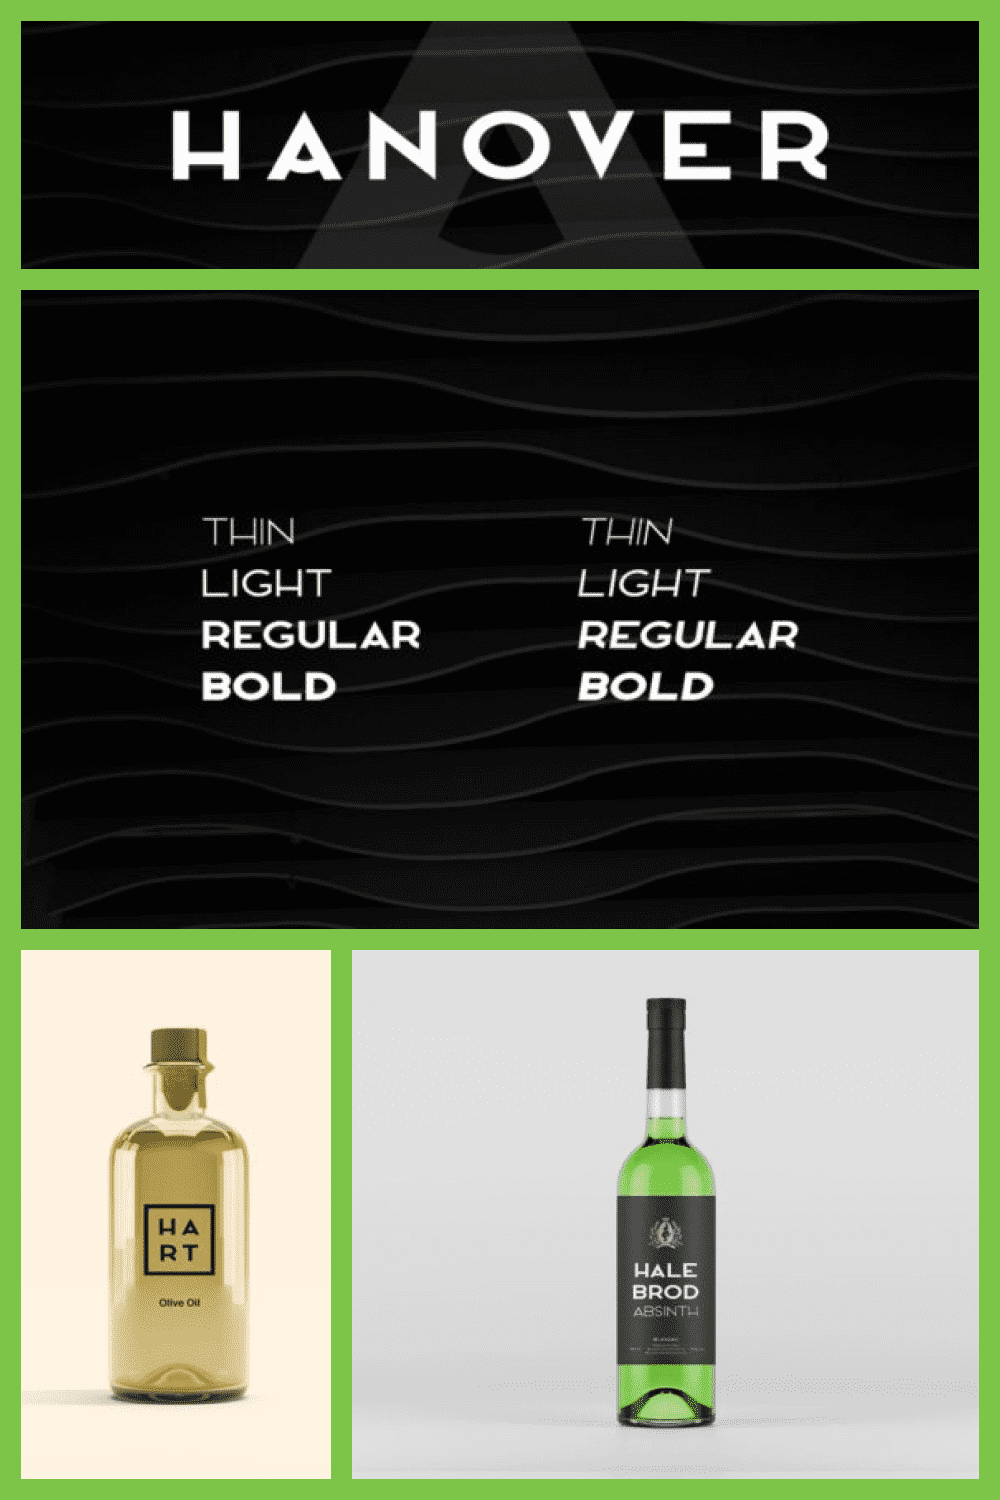 Stylish, luxurious, and modern, Hanover is the most amazing sans serif font.